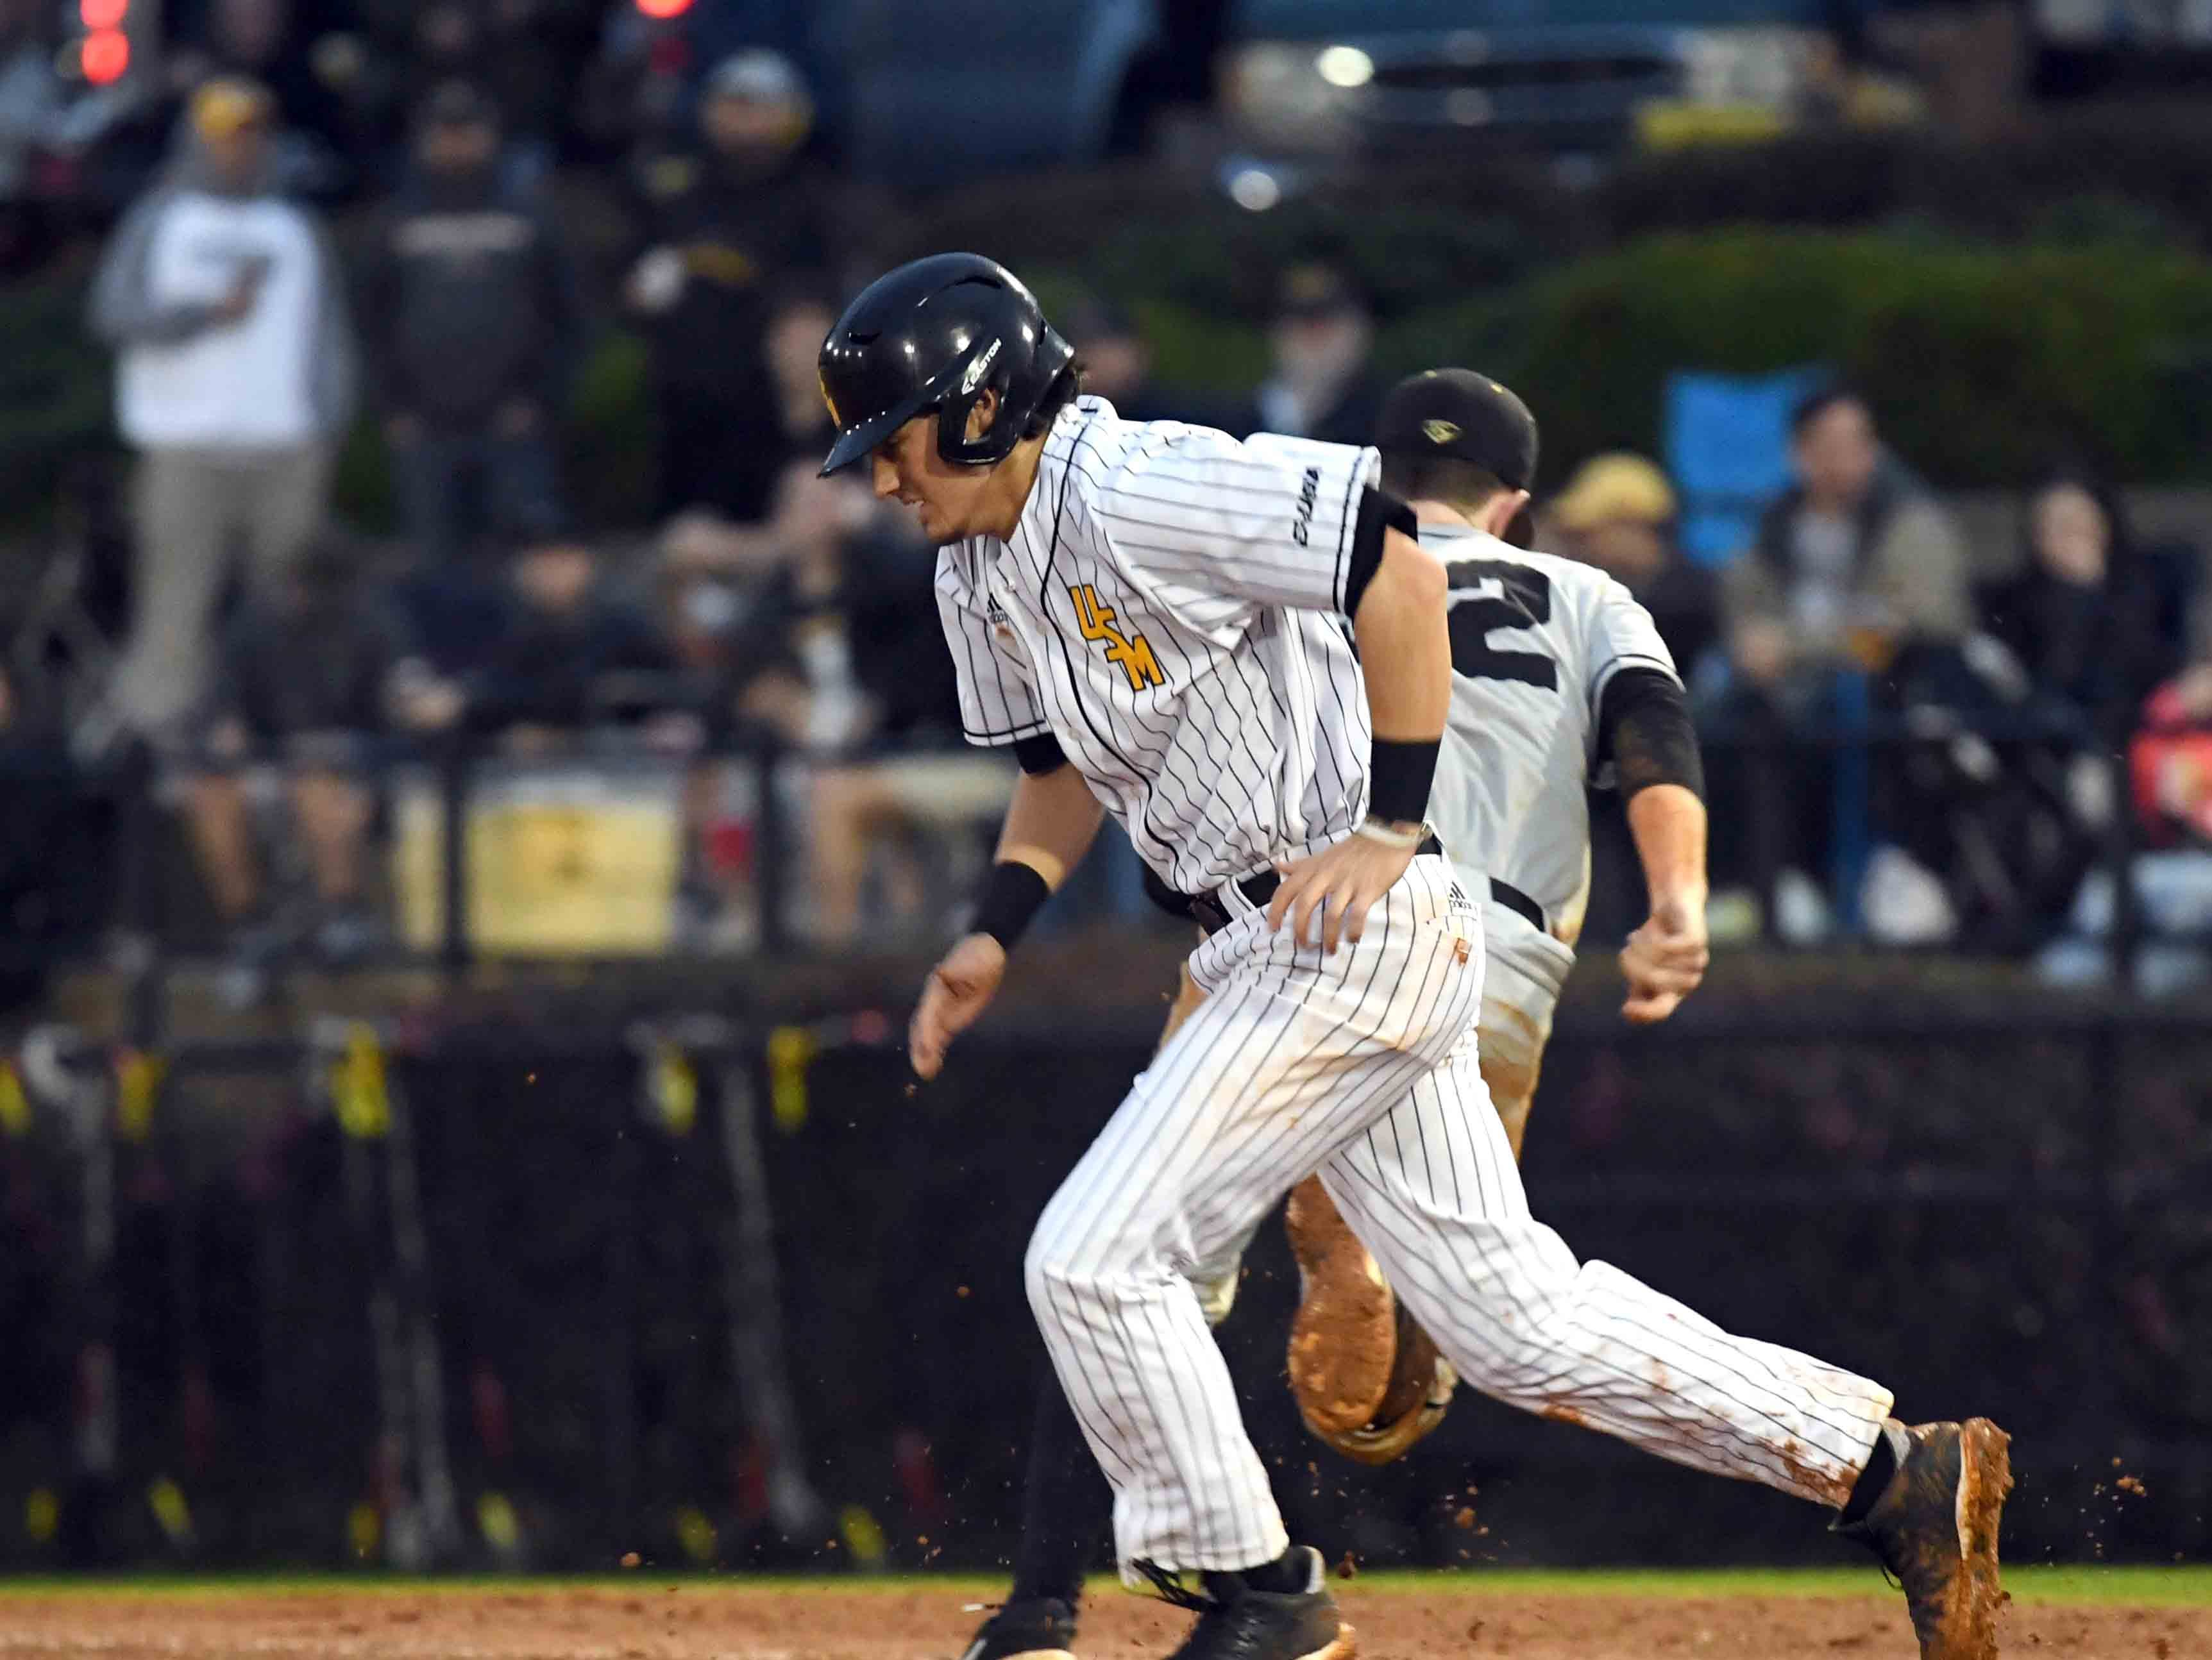 Southern Miss' Storme Cooper runs to second base in the season opener against Purdue on Friday, February 15, 2019.